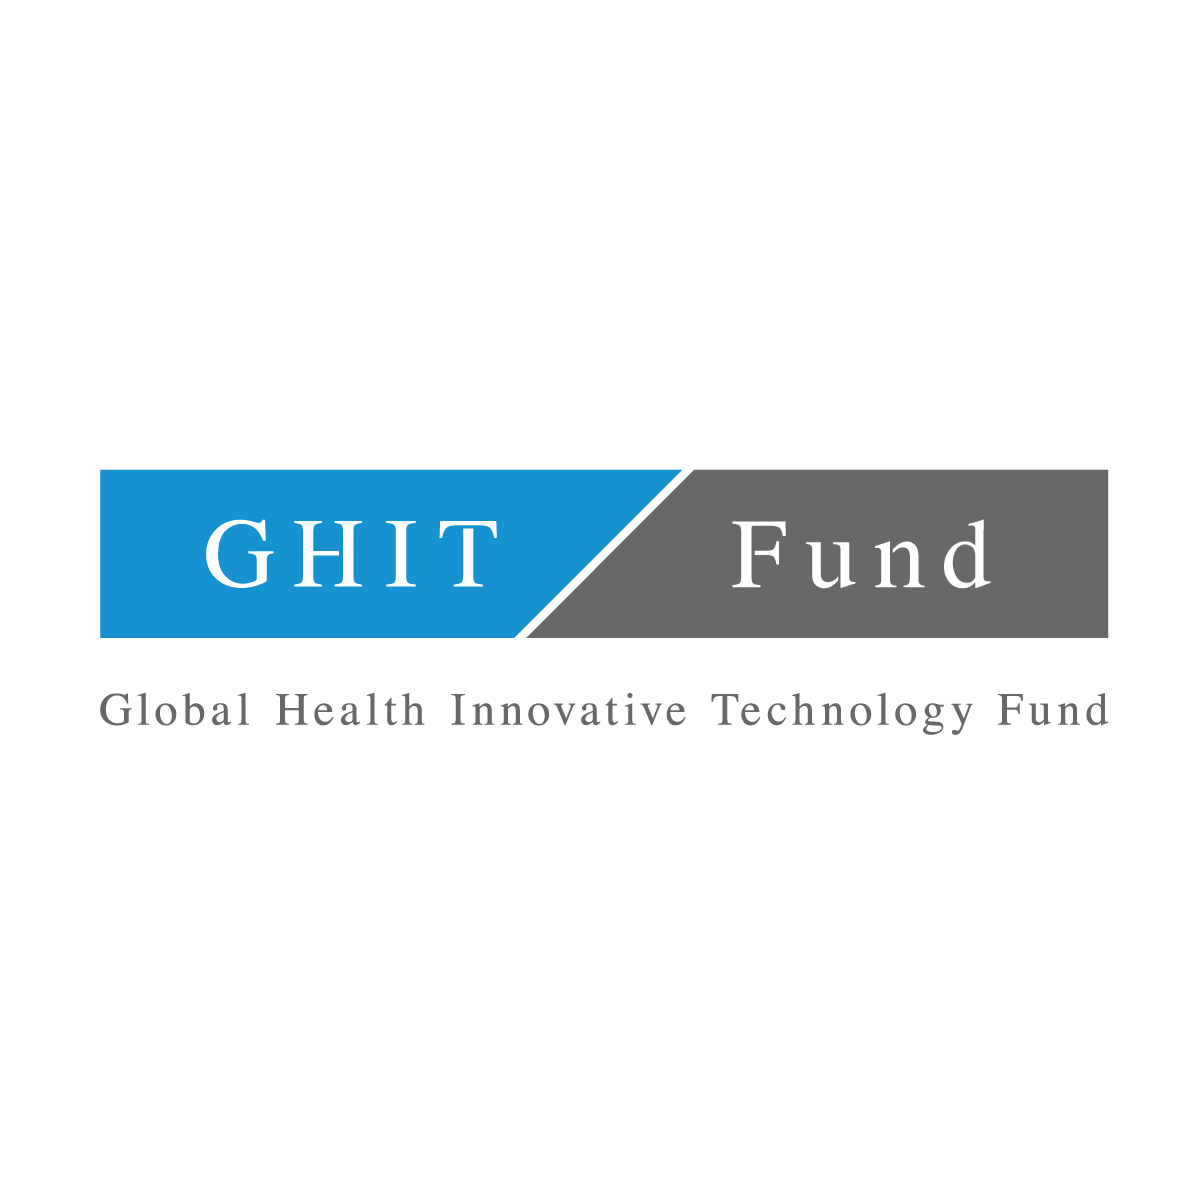 GHIT Fund | Global Health Innovative Technology Fund